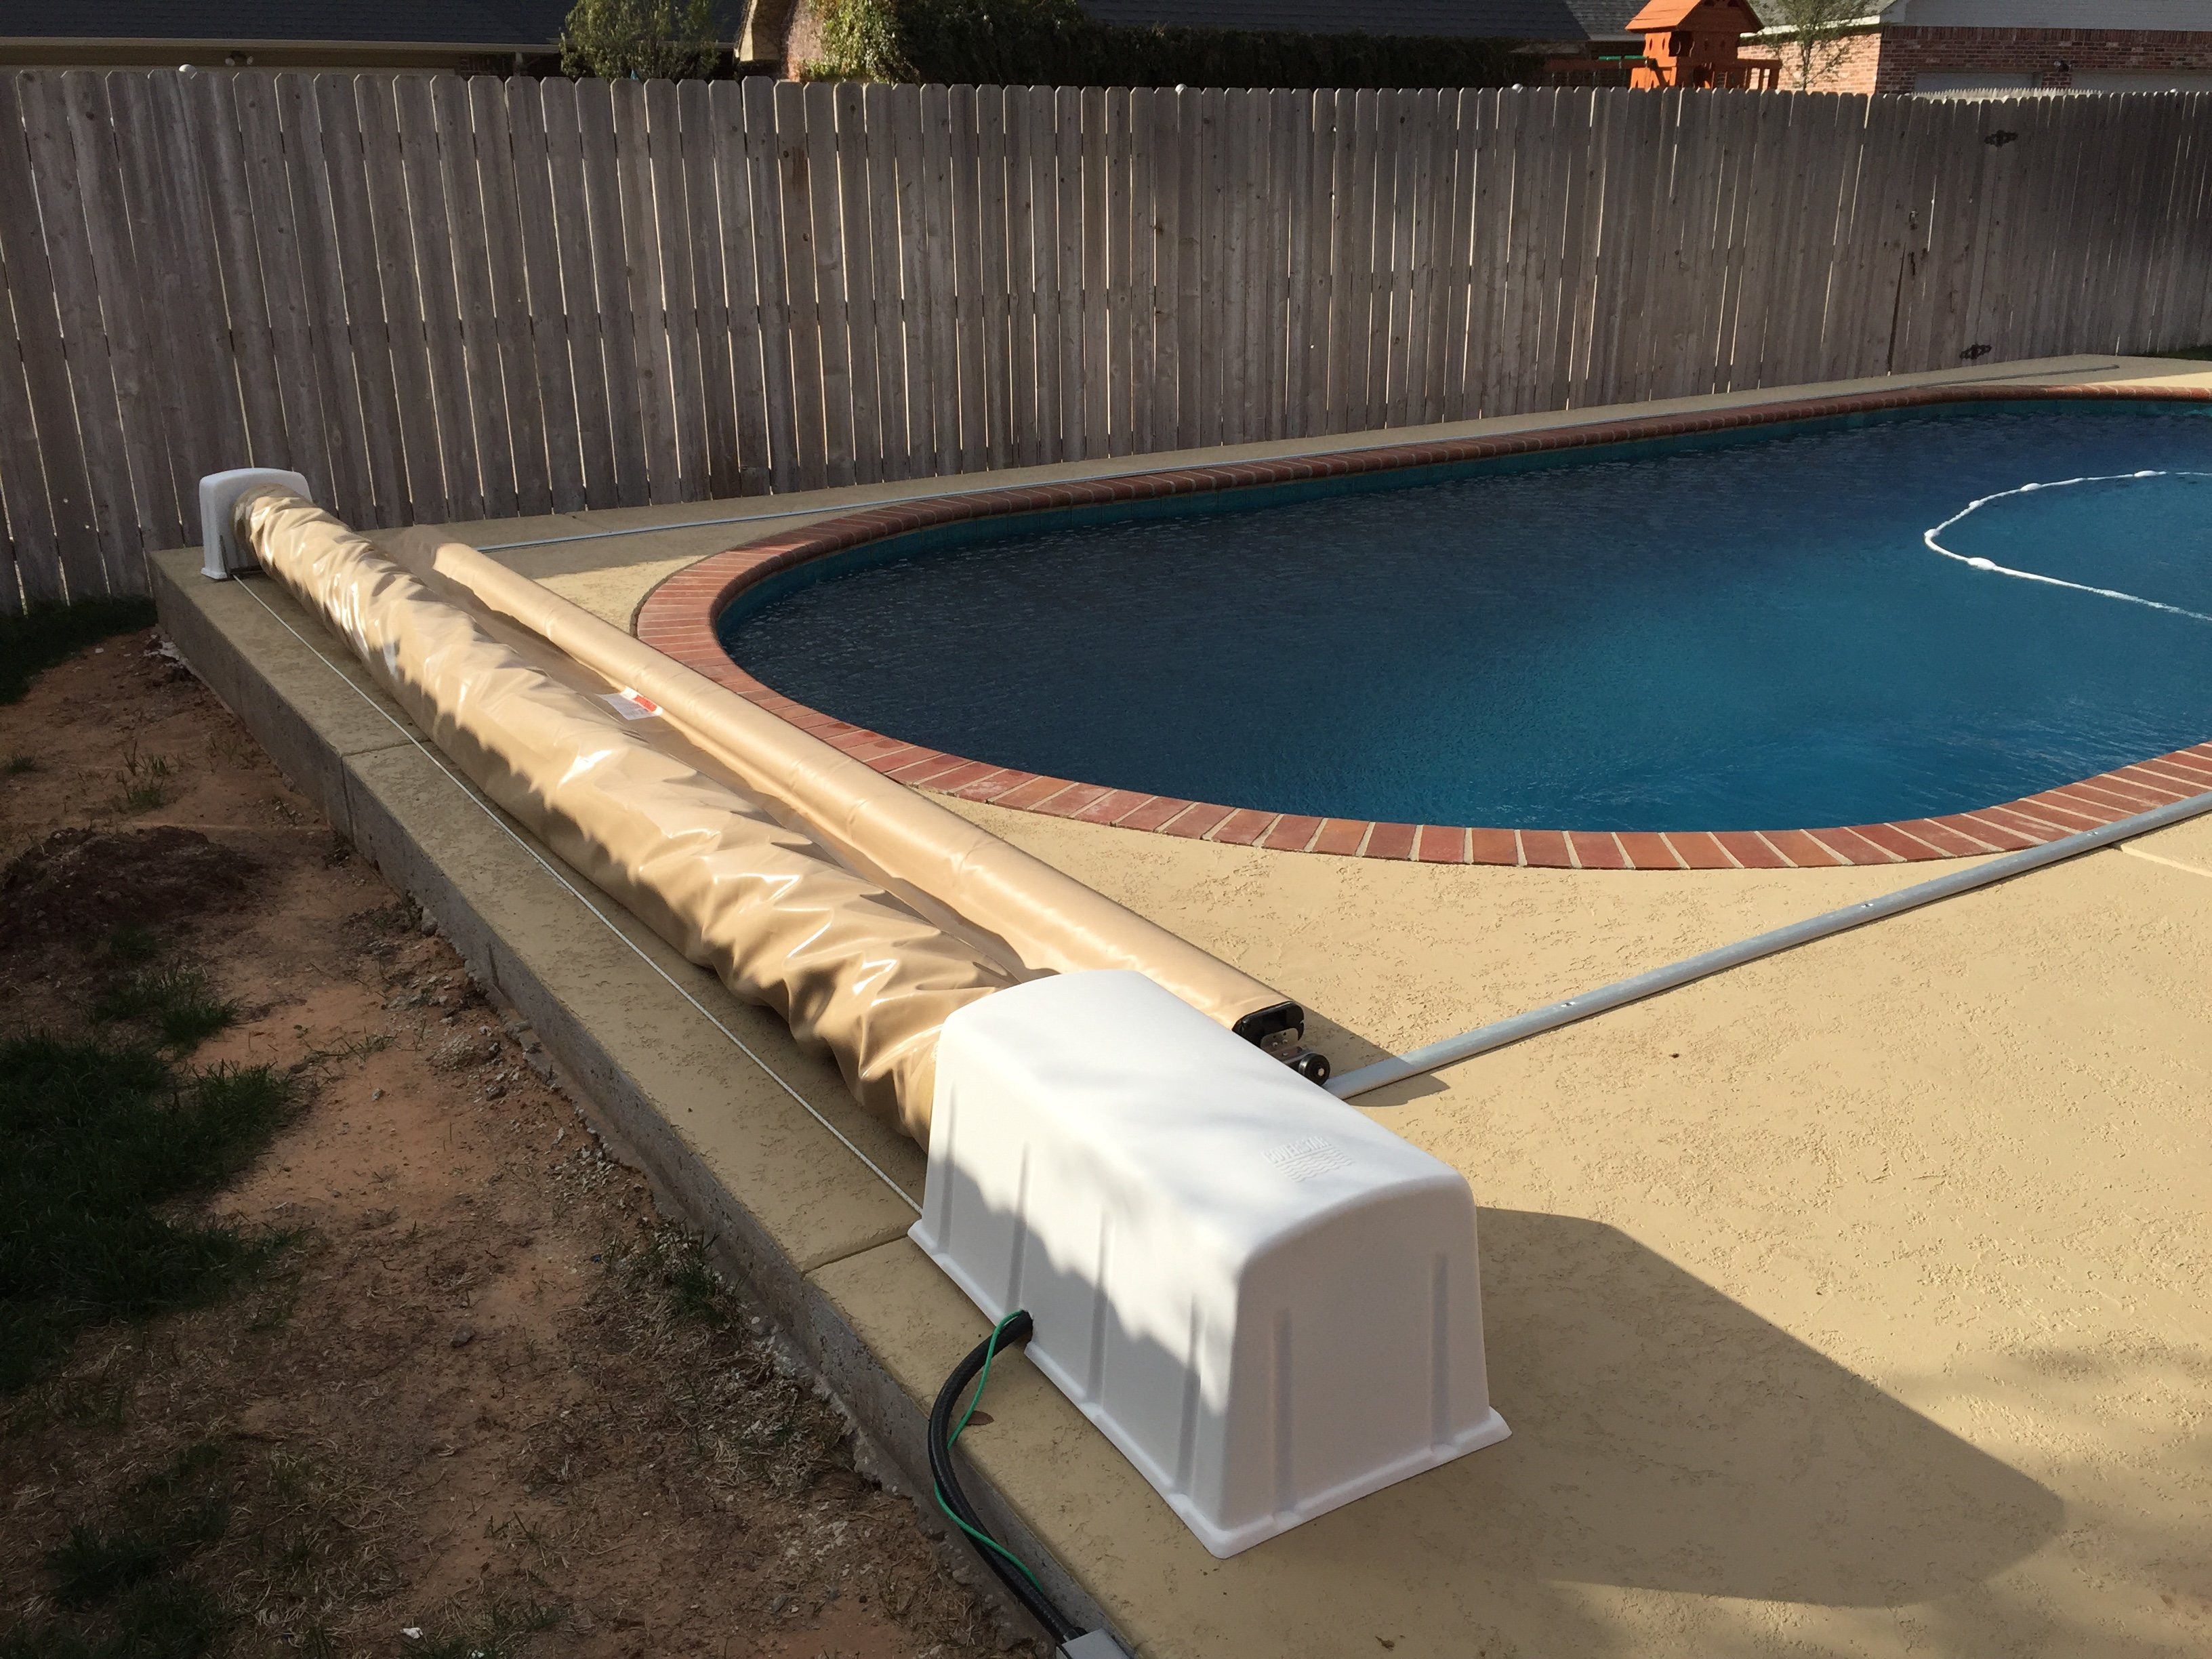 Out-Back Pool & Spa | Inground Pool in Amarillo, TX - Out-Back Pool & Spa